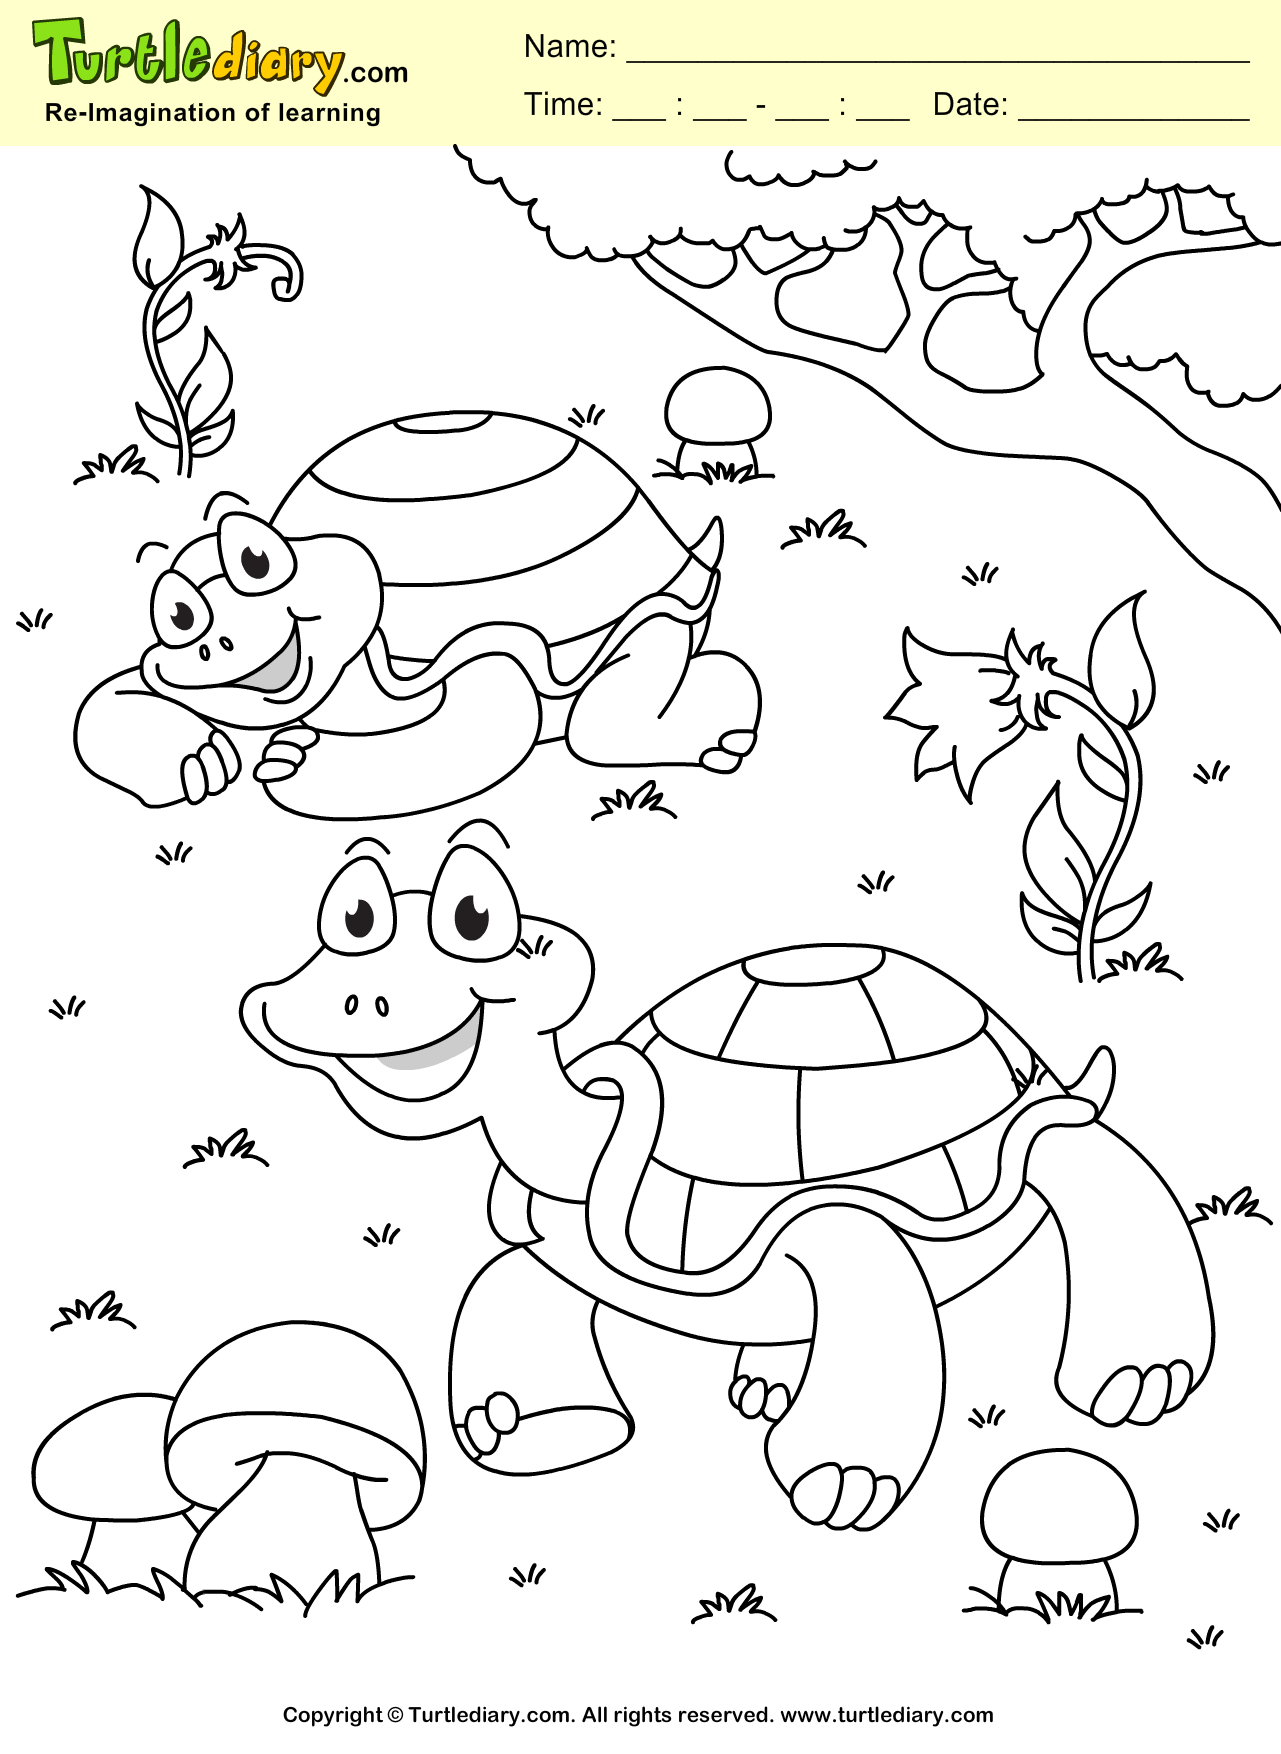 Turtle Coloring Sheet Turtle